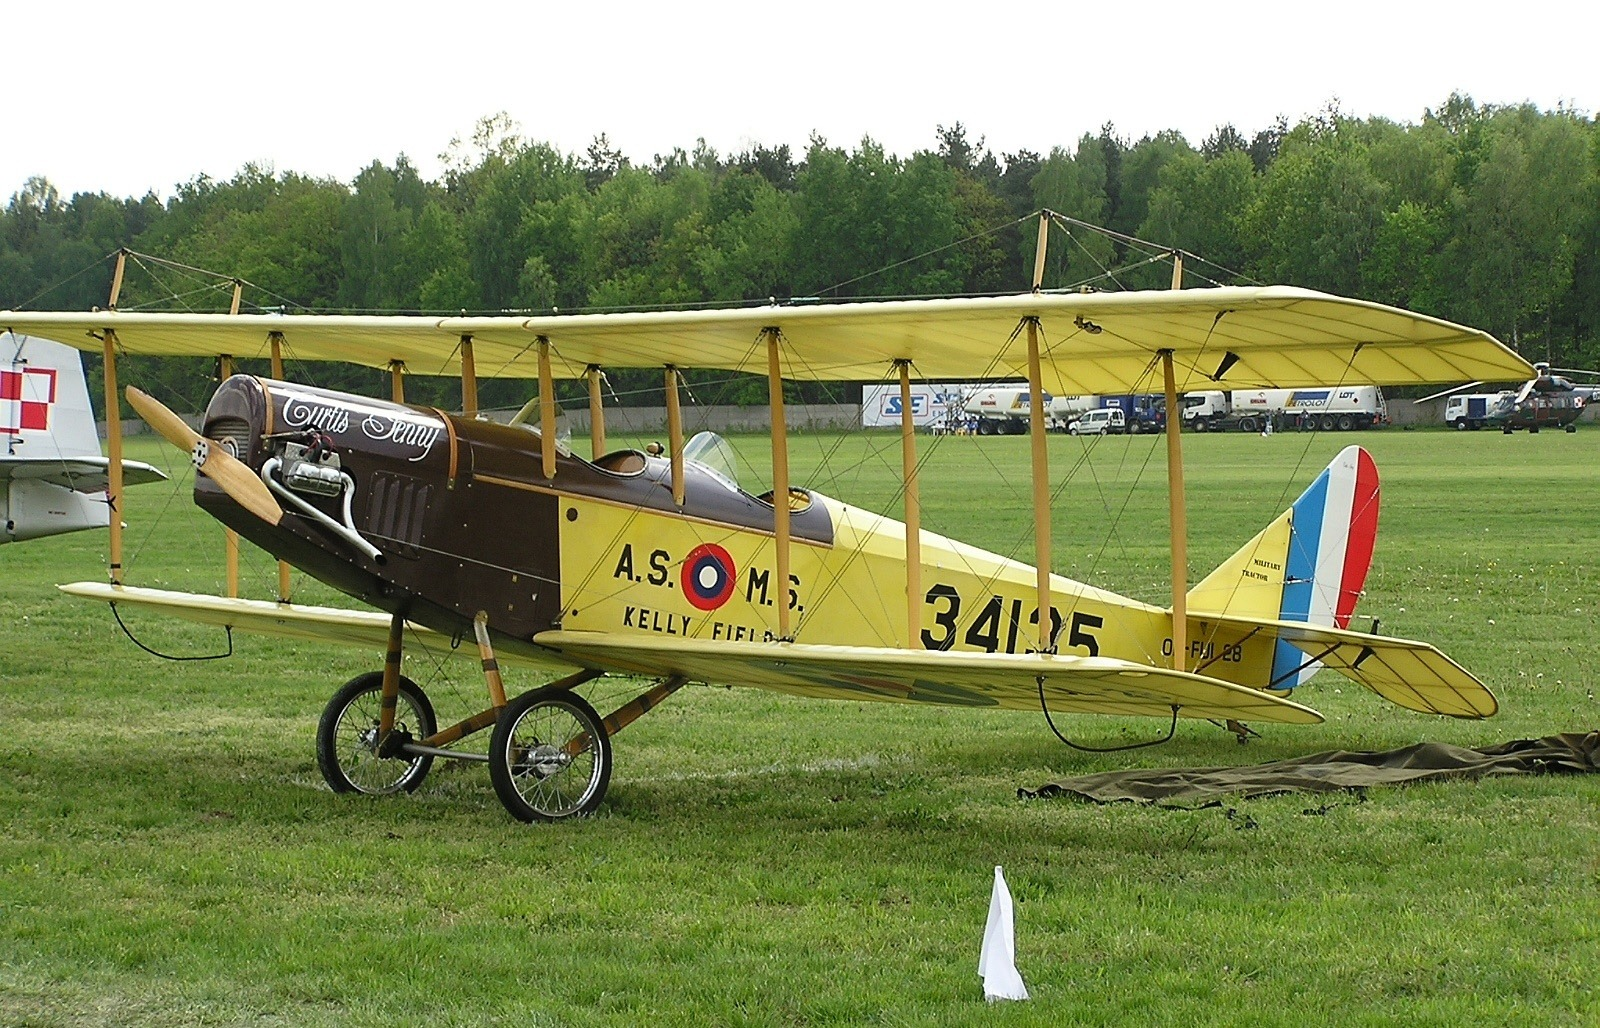 PLANS AND INFORMATION SET FOR HOMEBUILD STOL AIRCRAFT B1-RD PART103 ULTRALIGHT